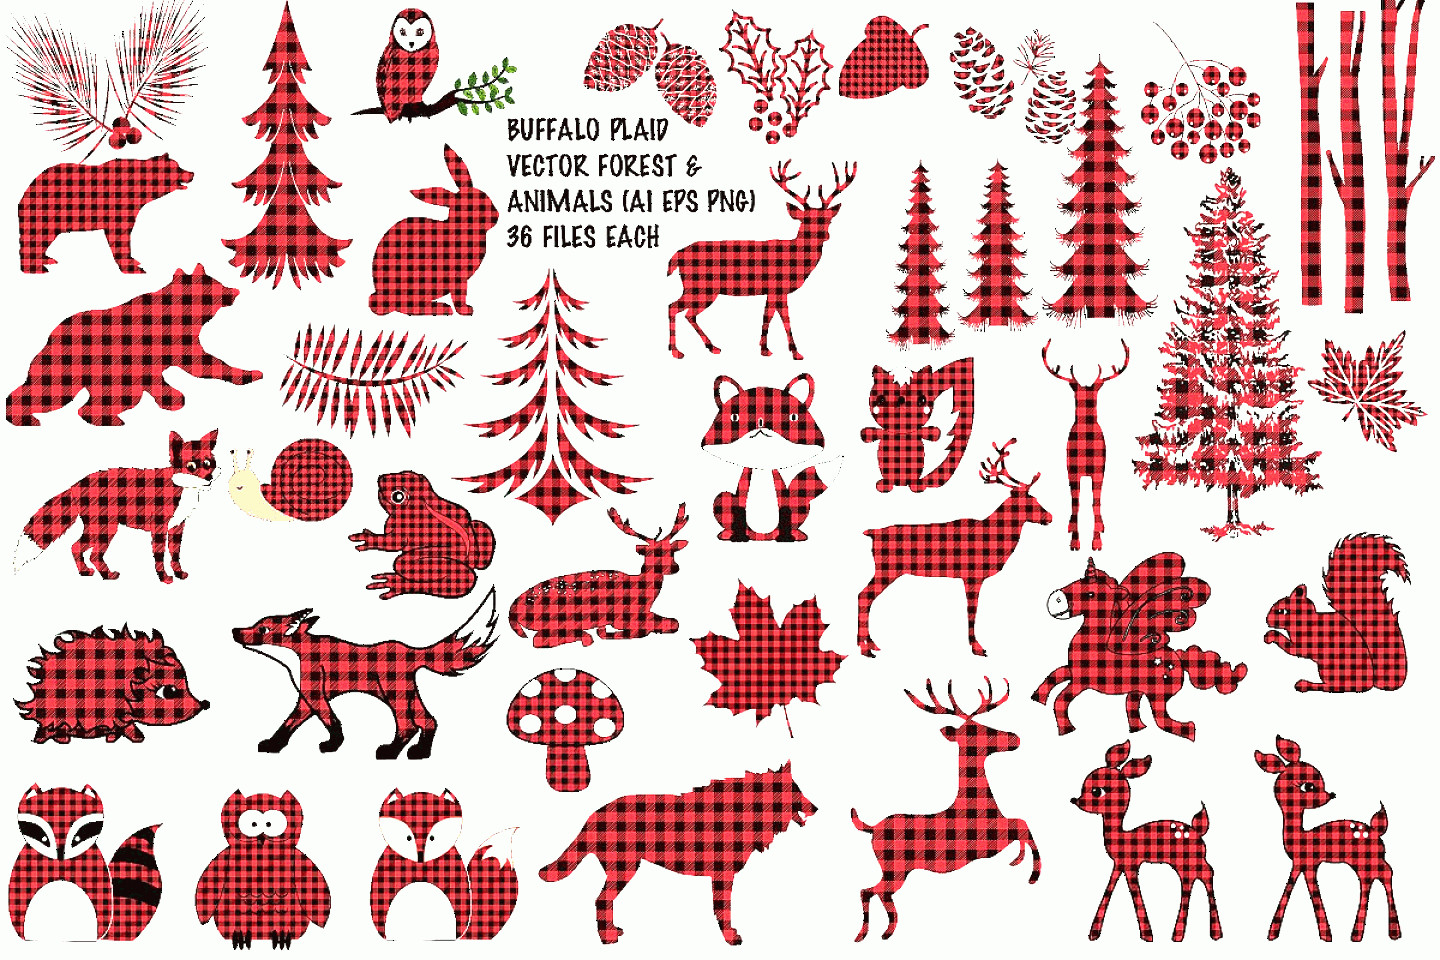 Plaid Vector: Buffalo Plaid Vector Animals And Elements Ai Eps Vecor And Png